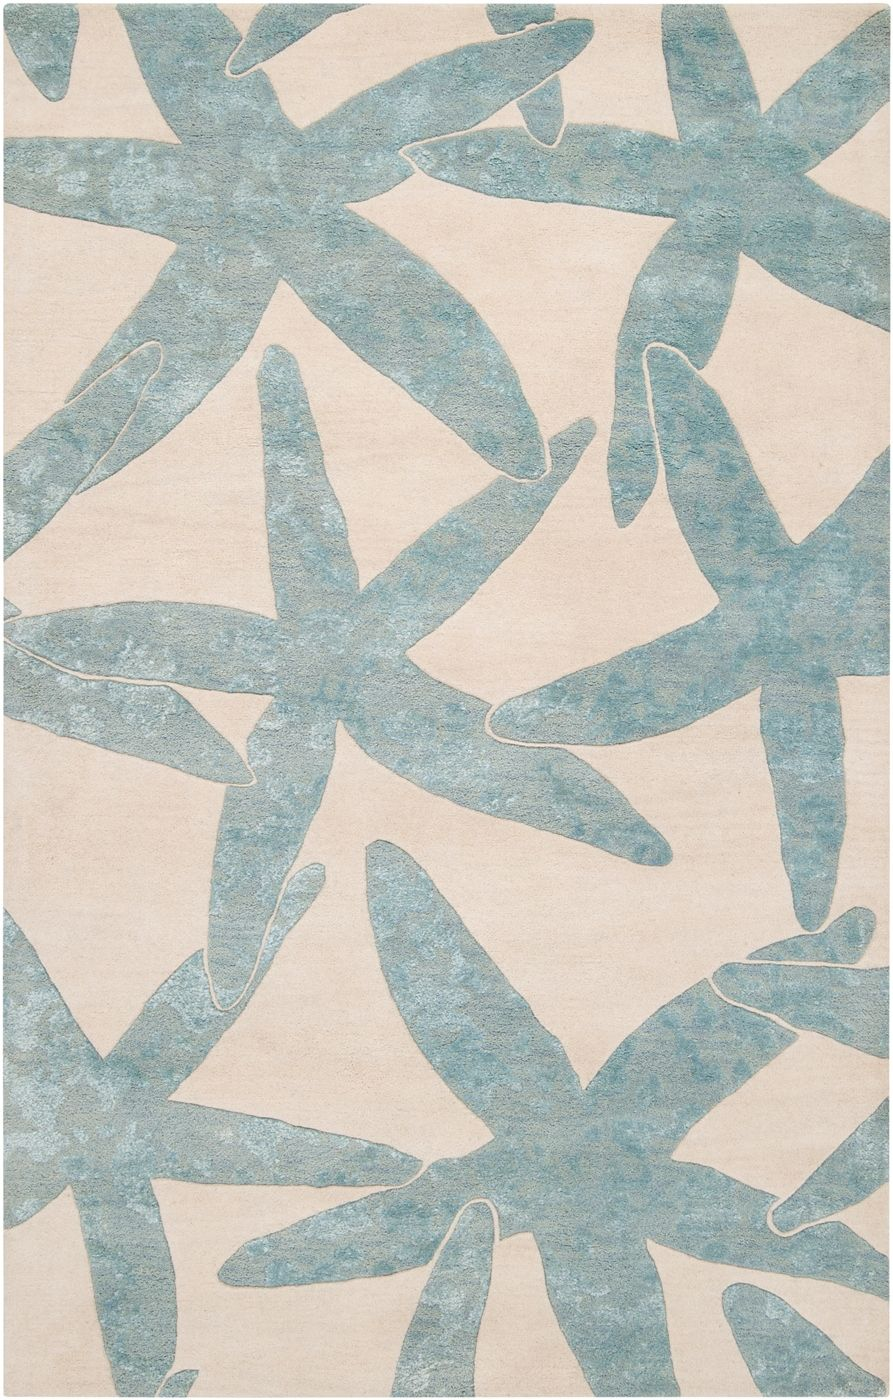 Escape Starfish Area Rug   Foggy Blue On Ivory: Beach Decor, Coastal Home  Decor